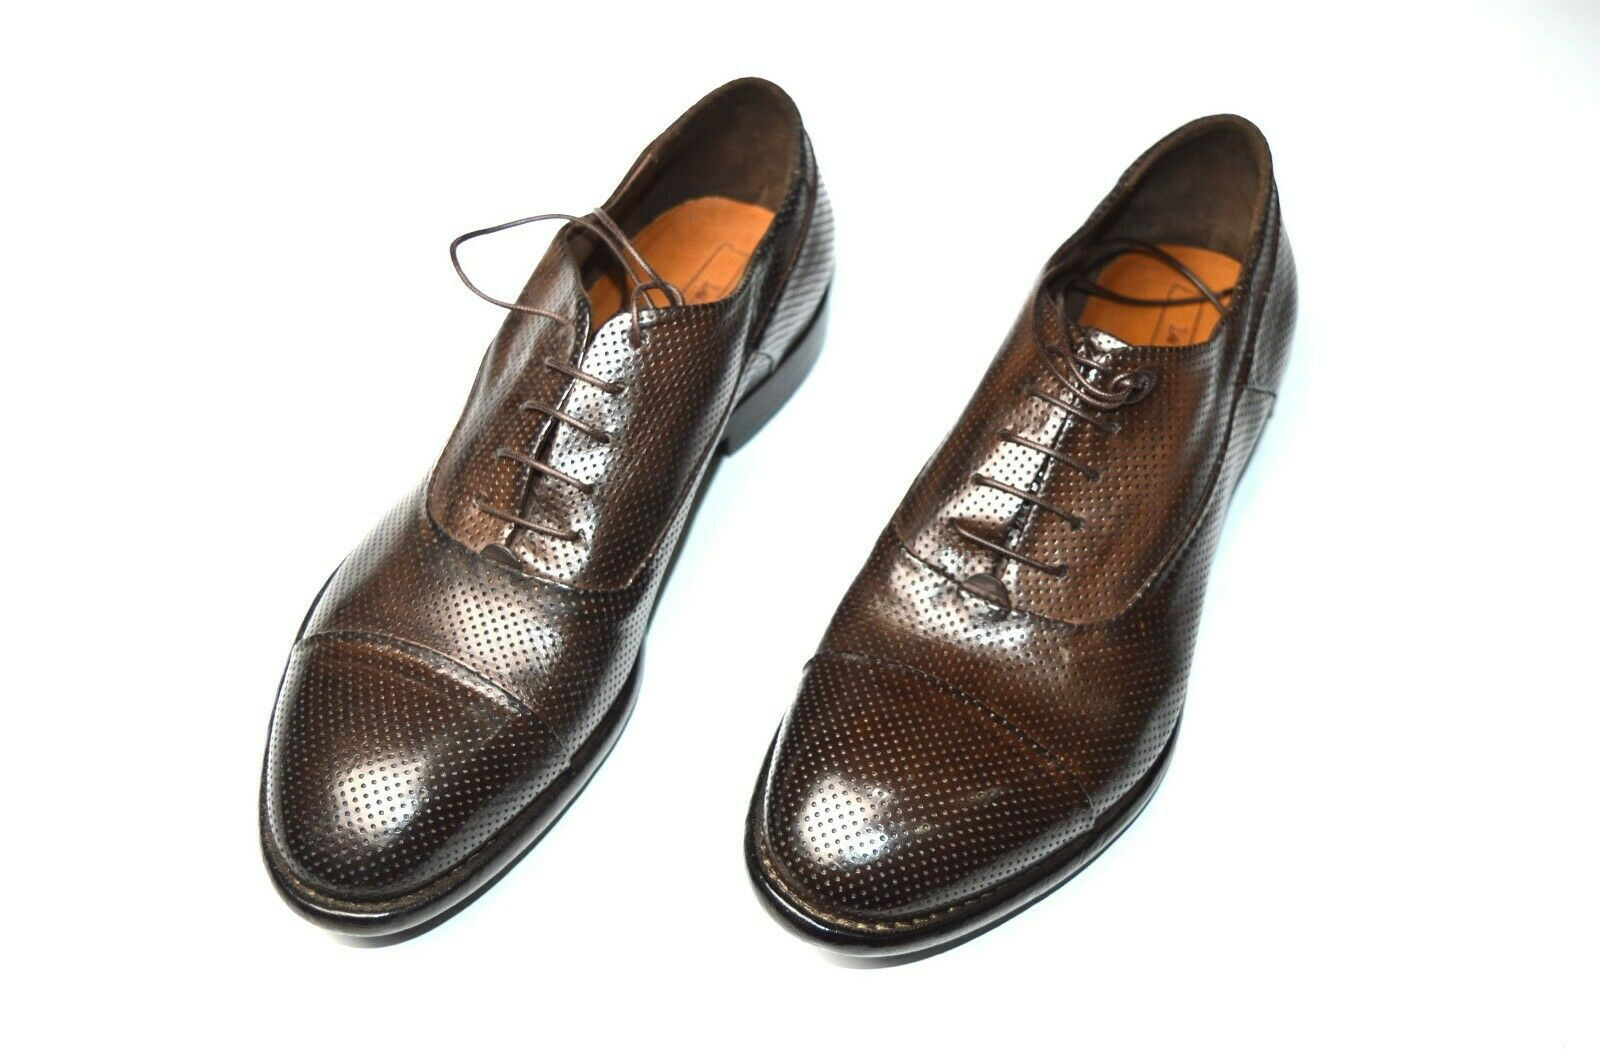 NEW LEMARGO Dress Leather scarpe  Dimensione Eu 43 Uk 9 Us 10 (CodLM2)